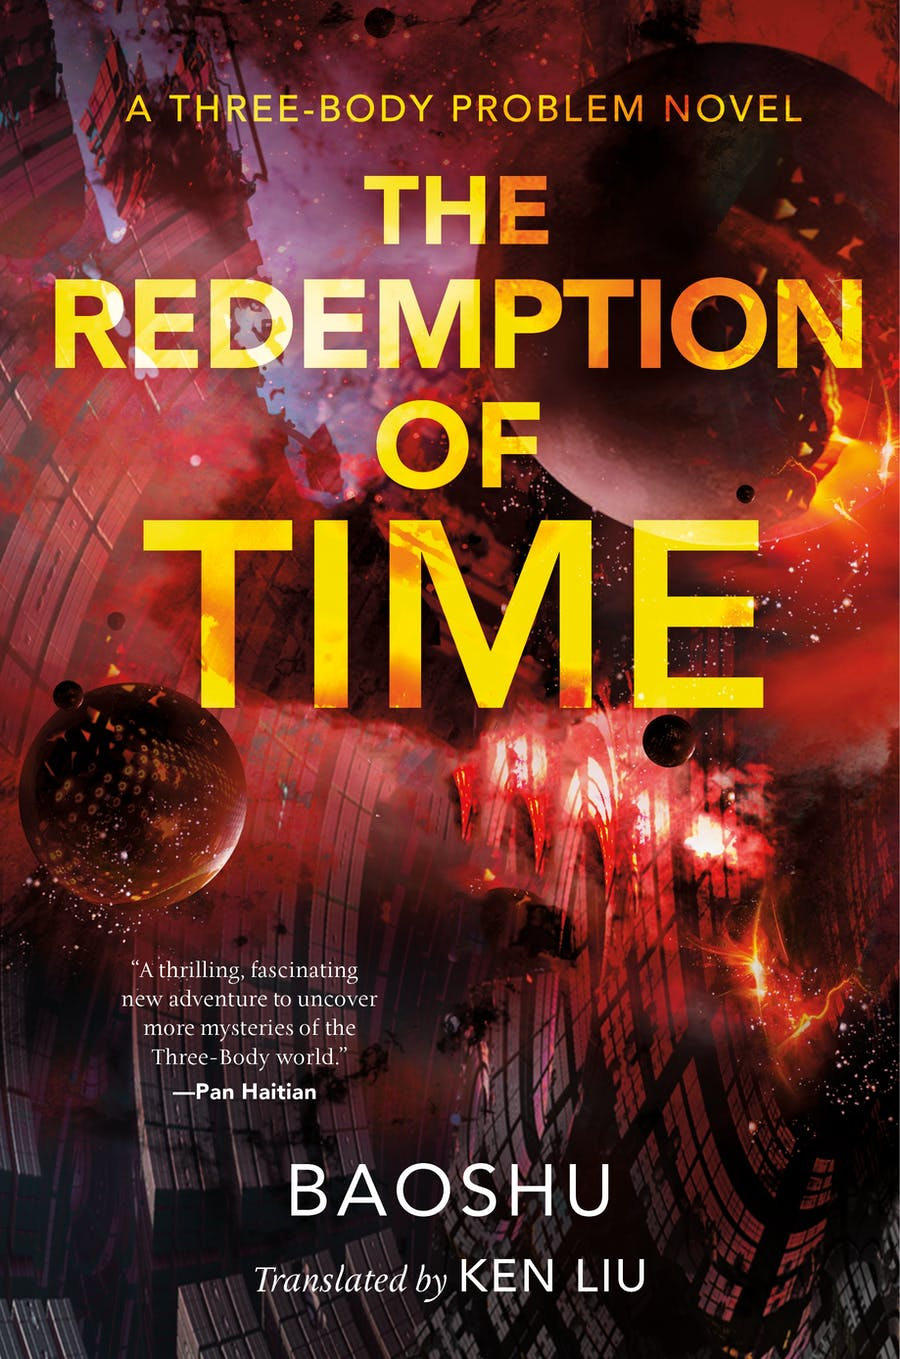 The Redemption of Time by Baoshu, Translated by Ken Liu